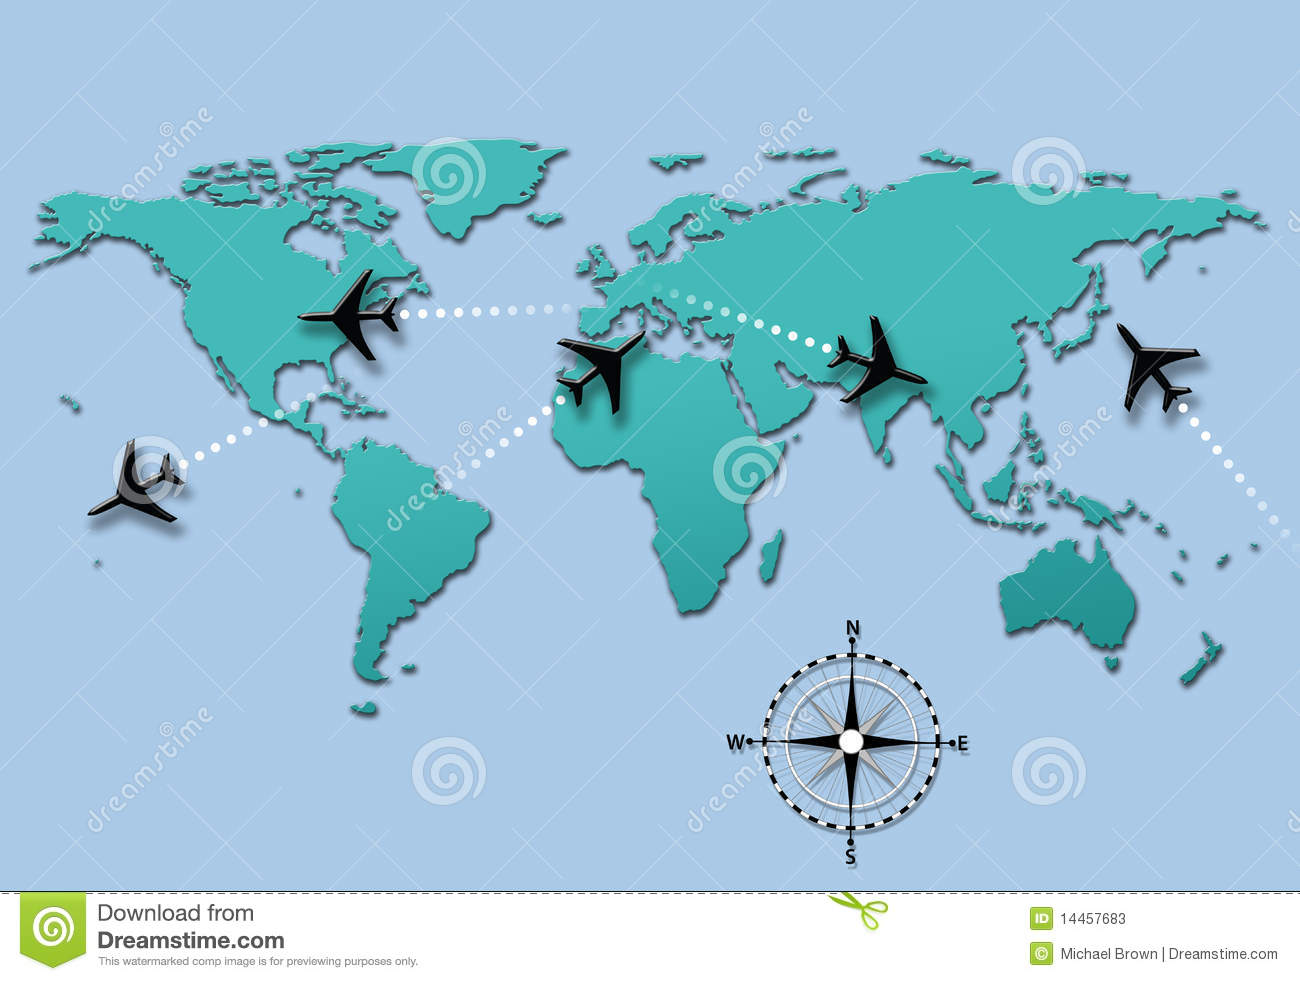 Plane Map Of The World Cvln Rp